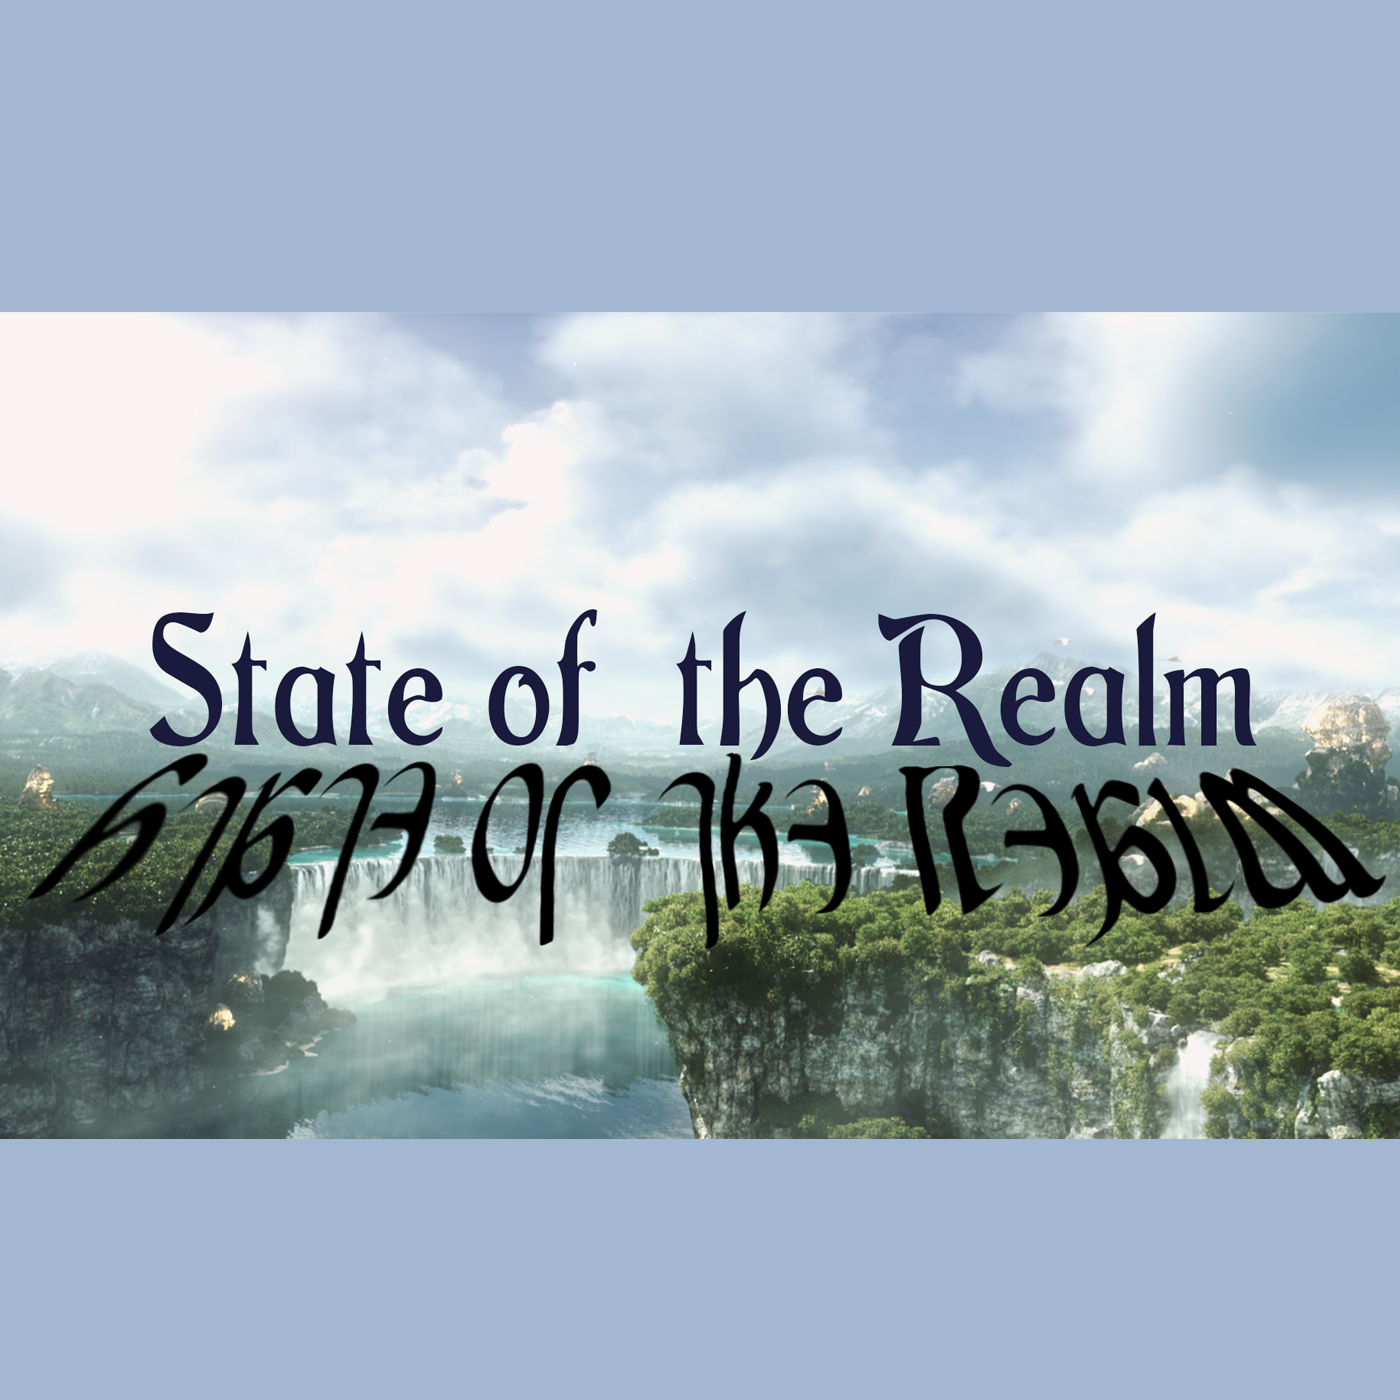 State of the Realm